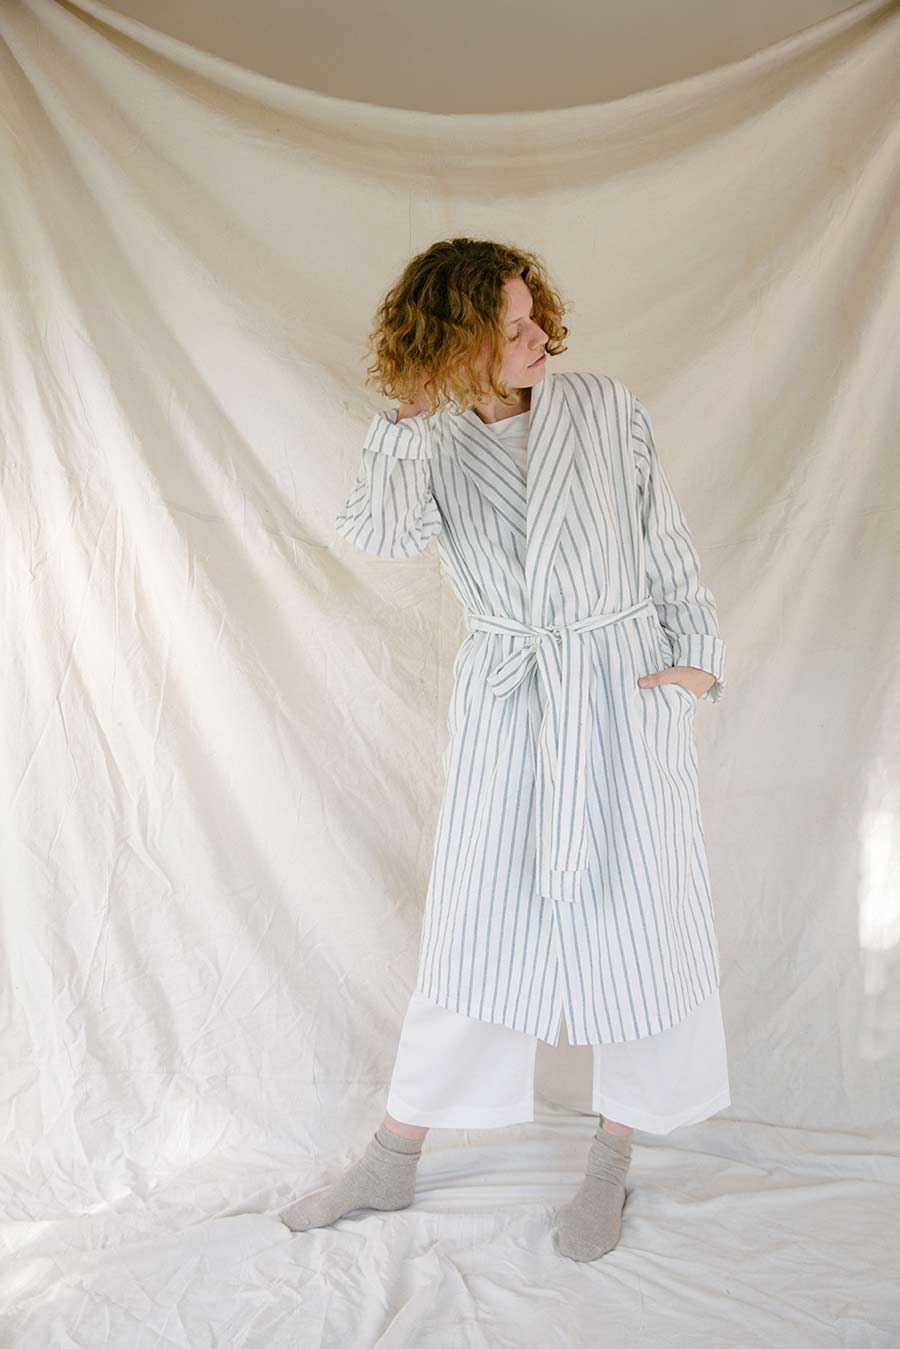 General Sleep Unisex Robe in Stripe